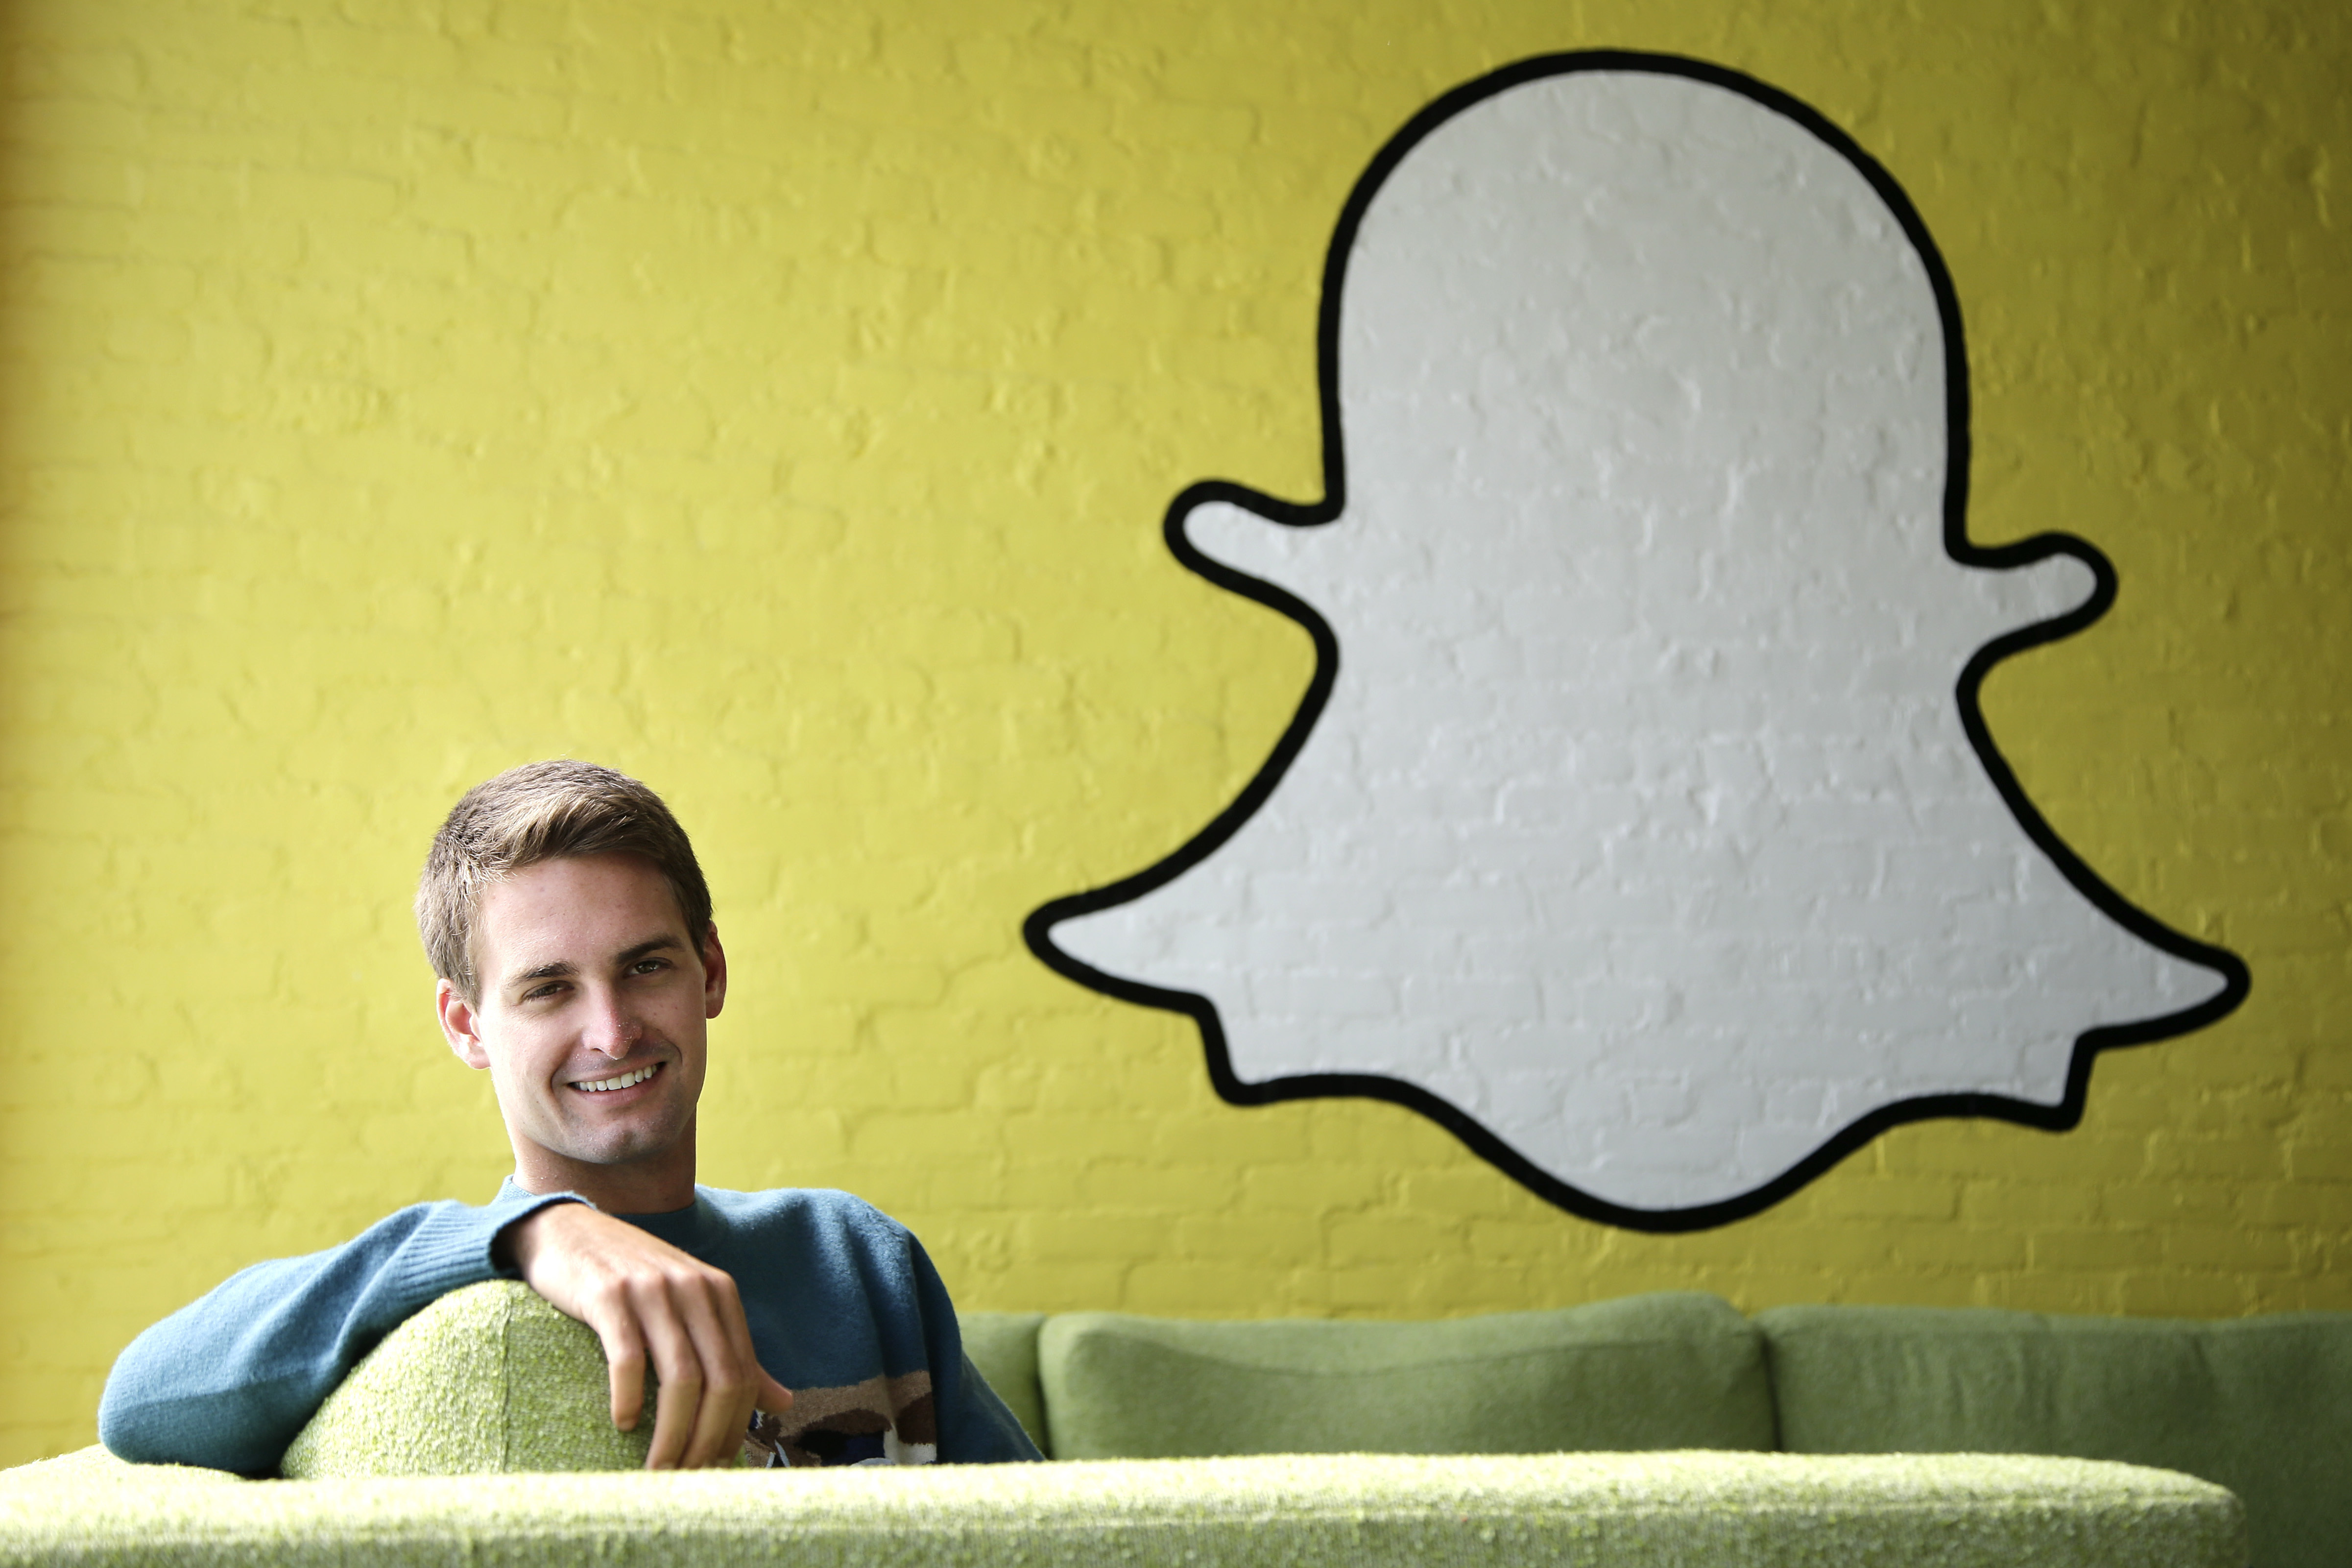 Snapchat Is Going Public, Seeking Up to $3 Billion